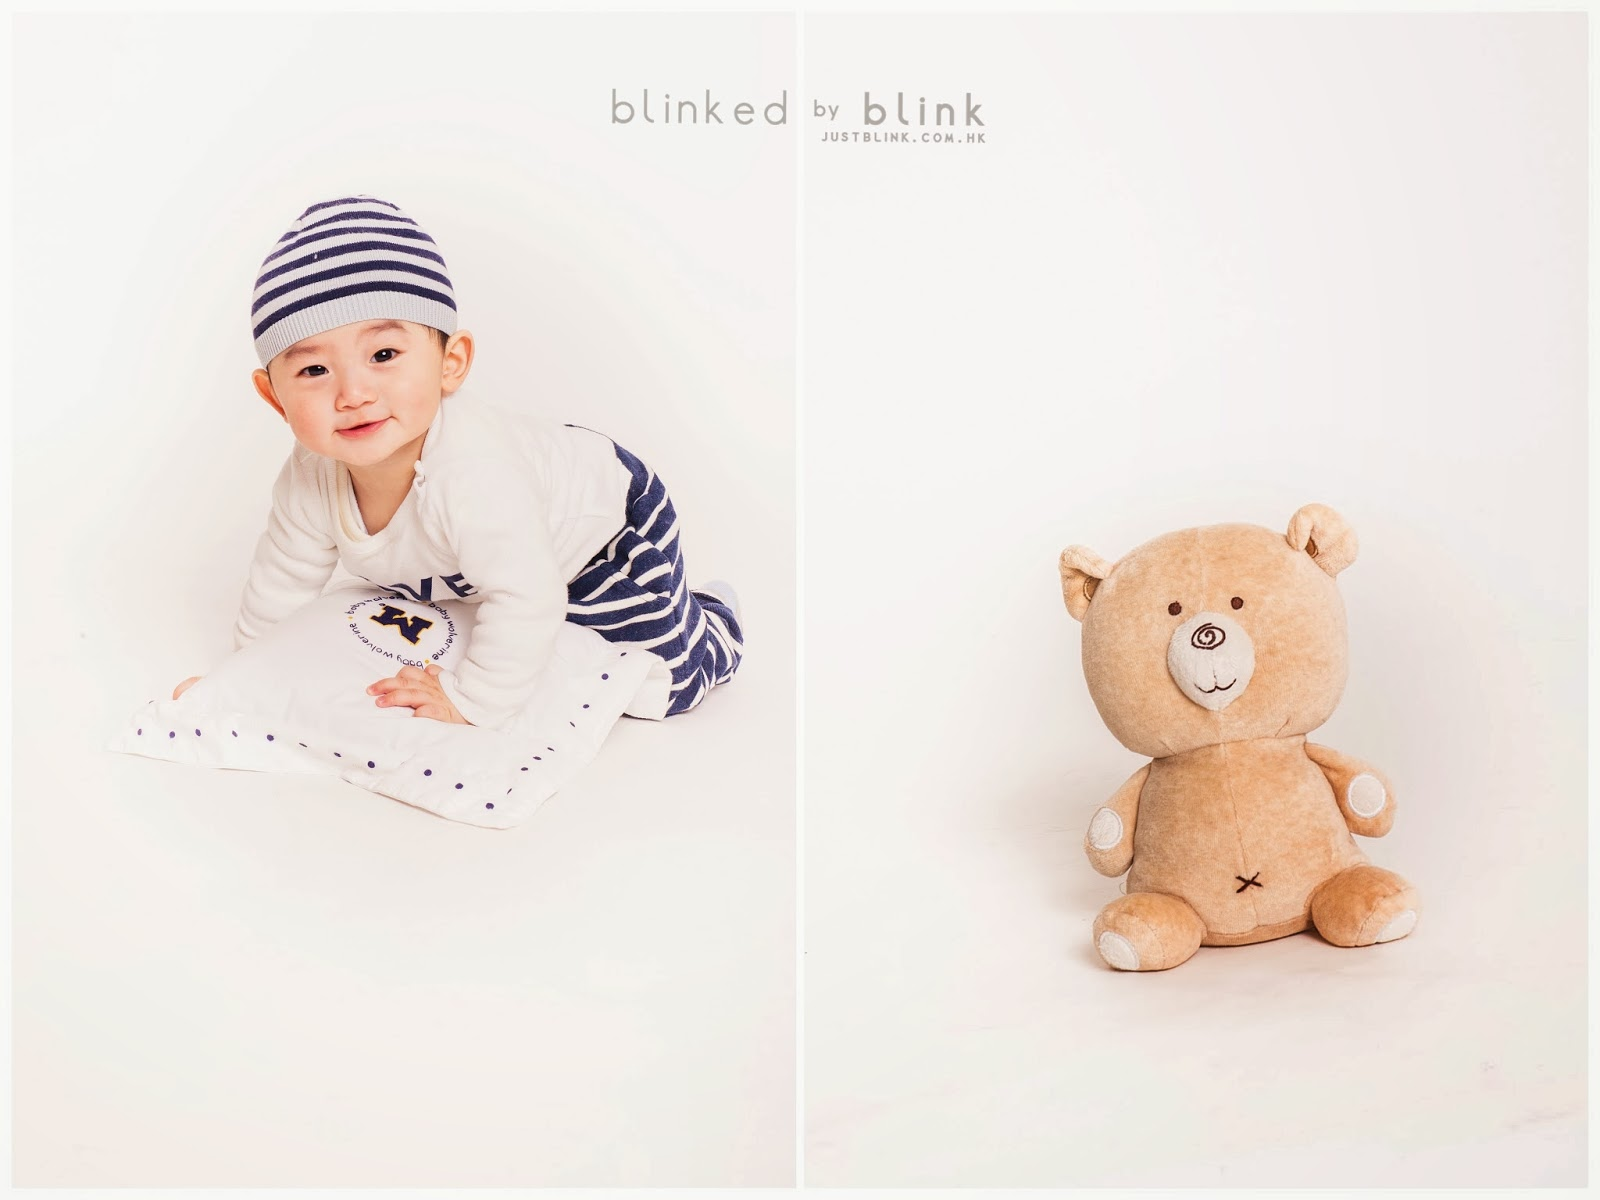 excellent very photogenic baby in the studio and we enjoyed this shooting very much here are some of the good picks with baby baden